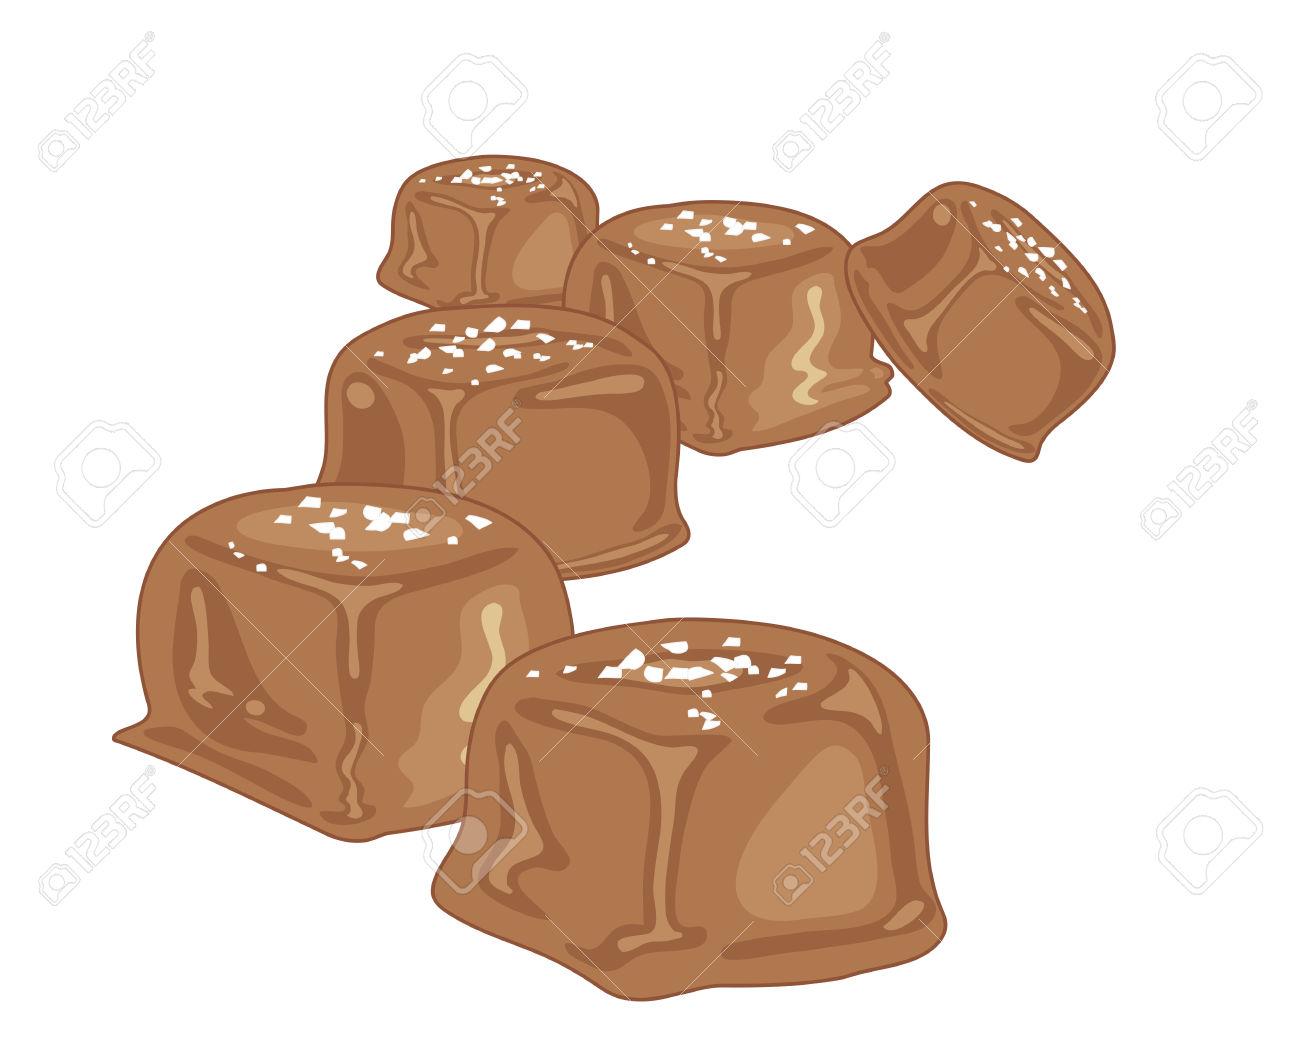 An Illustration Of Pieces Of Caramel Candy With A Chocolate.